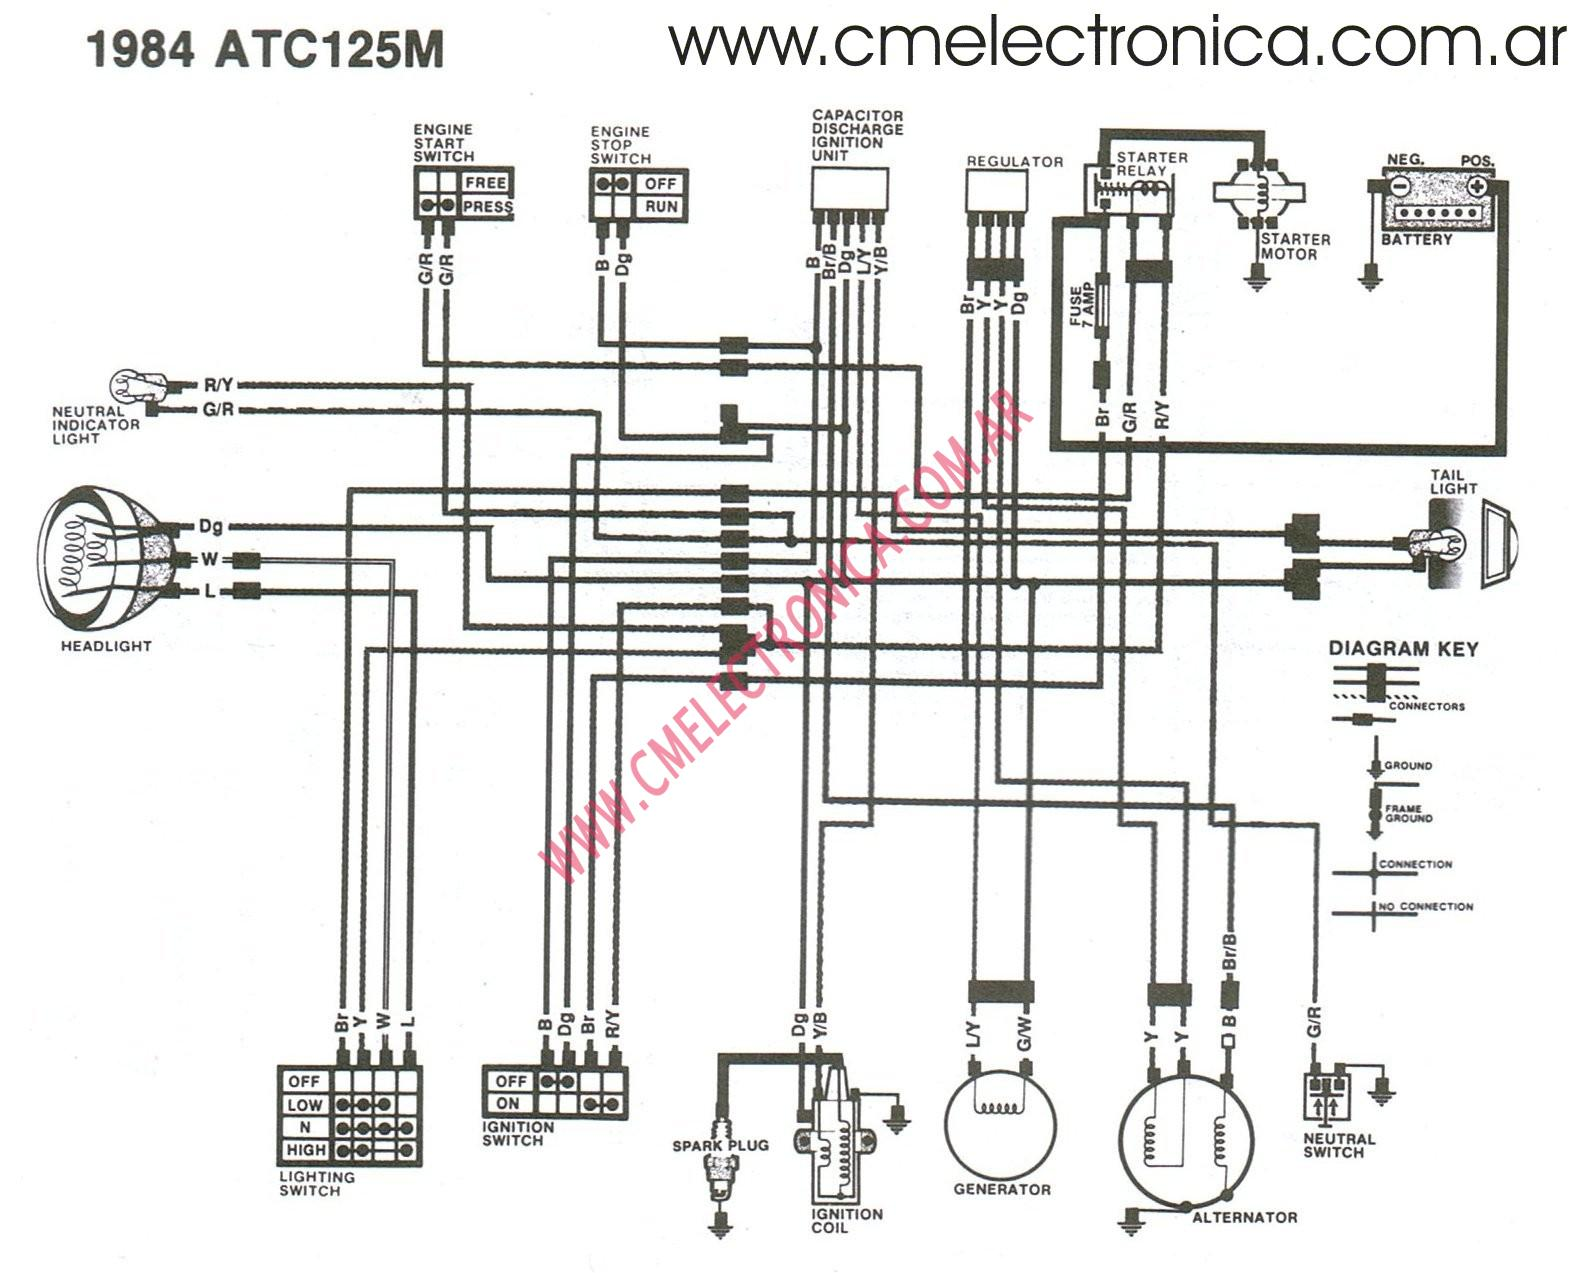 honda trx 125 engine diagram honda wiring diagrams